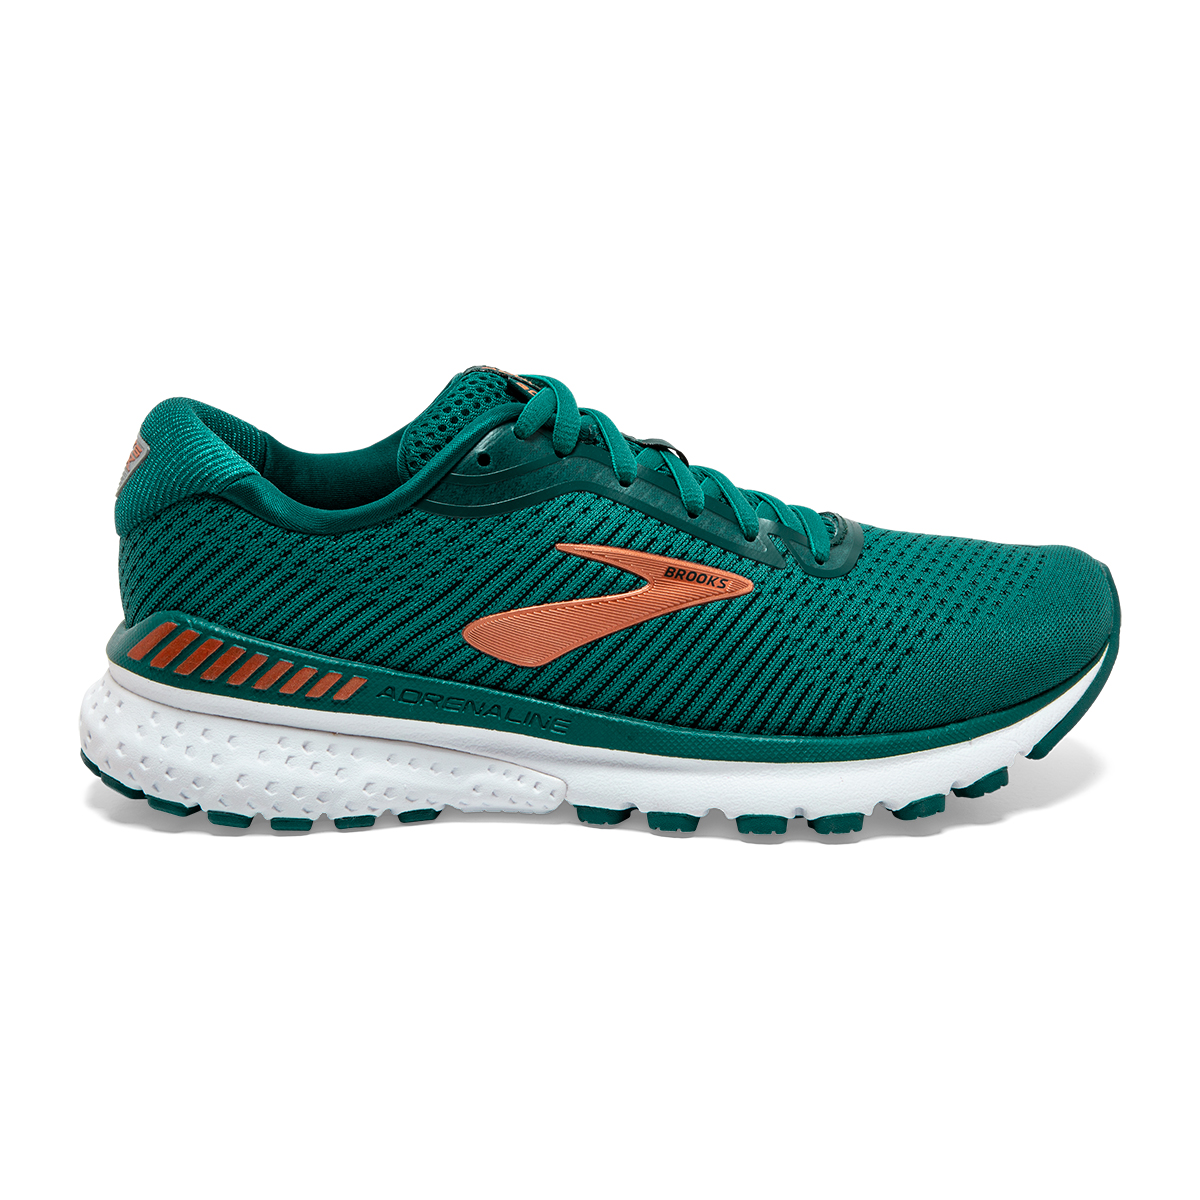 Women's Brooks Adrenaline GTS 20 Running Shoe - Color: Green/Teal/Copper - Size: 5 - Width: Regular, Green/Teal/Copper, large, image 1